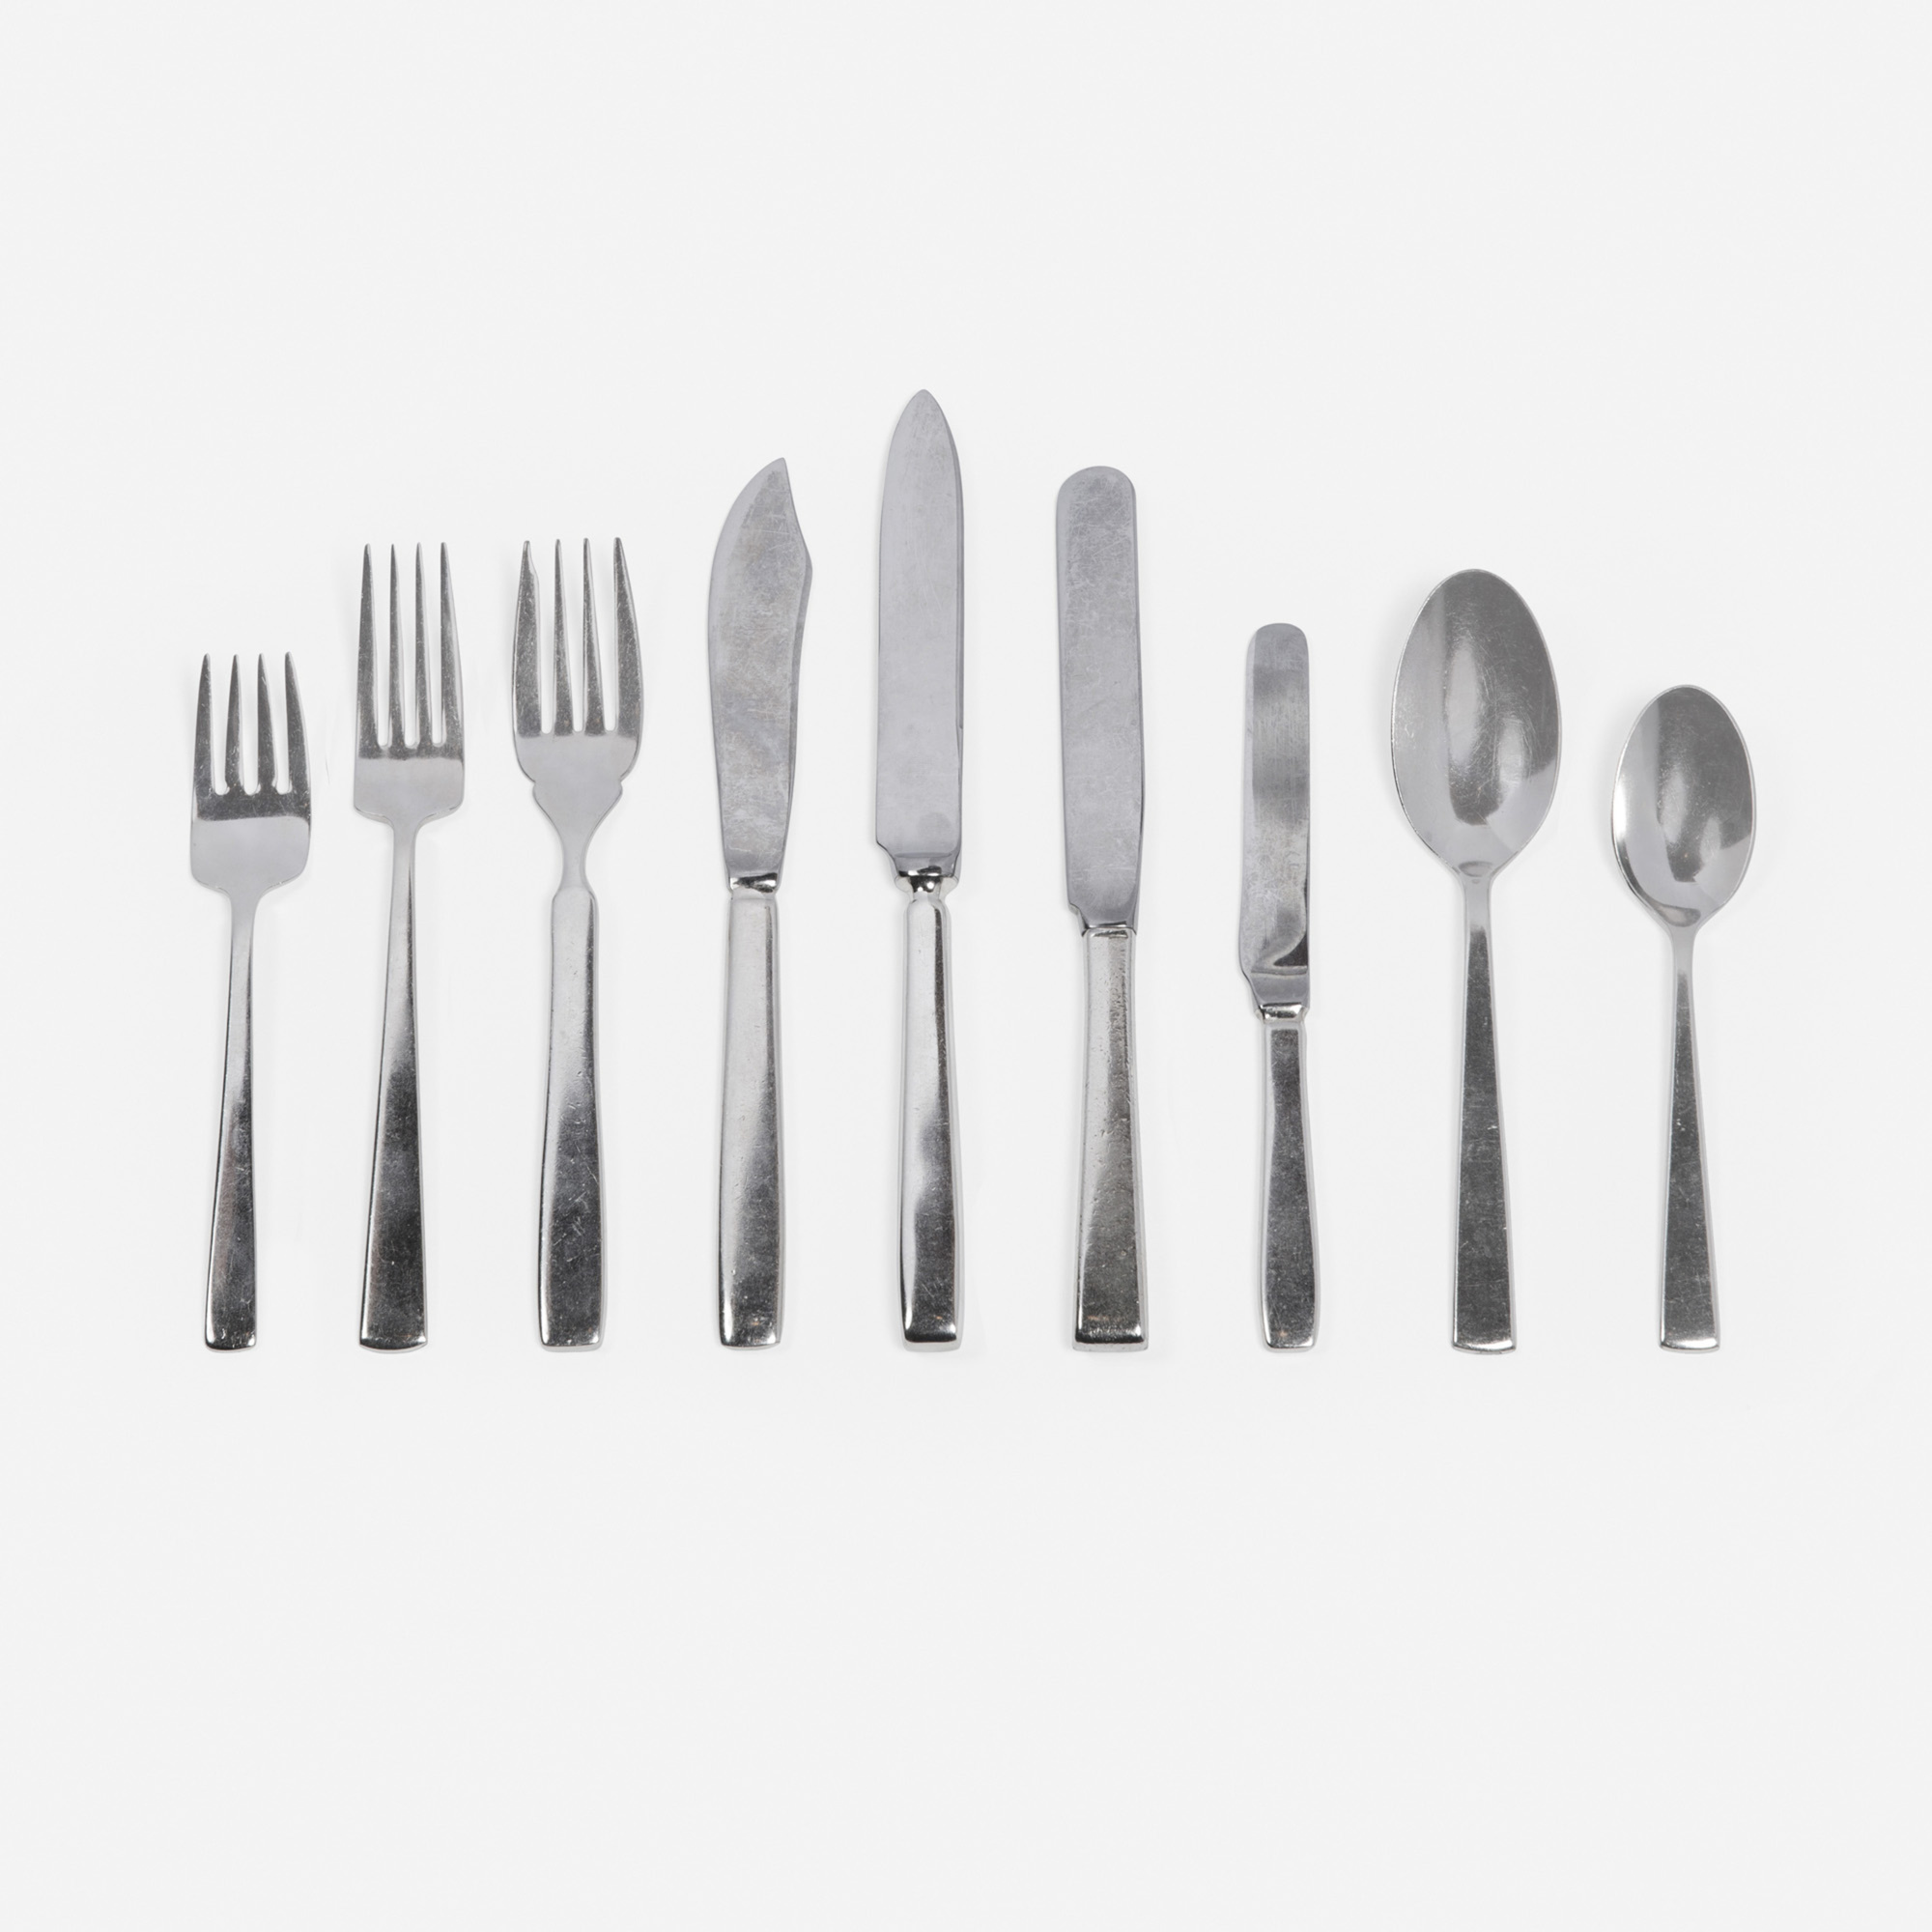 628: Garth and Ada Louise Huxtable / Four Seasons flatware from the Pool Room, service for twelve (1 of 1)